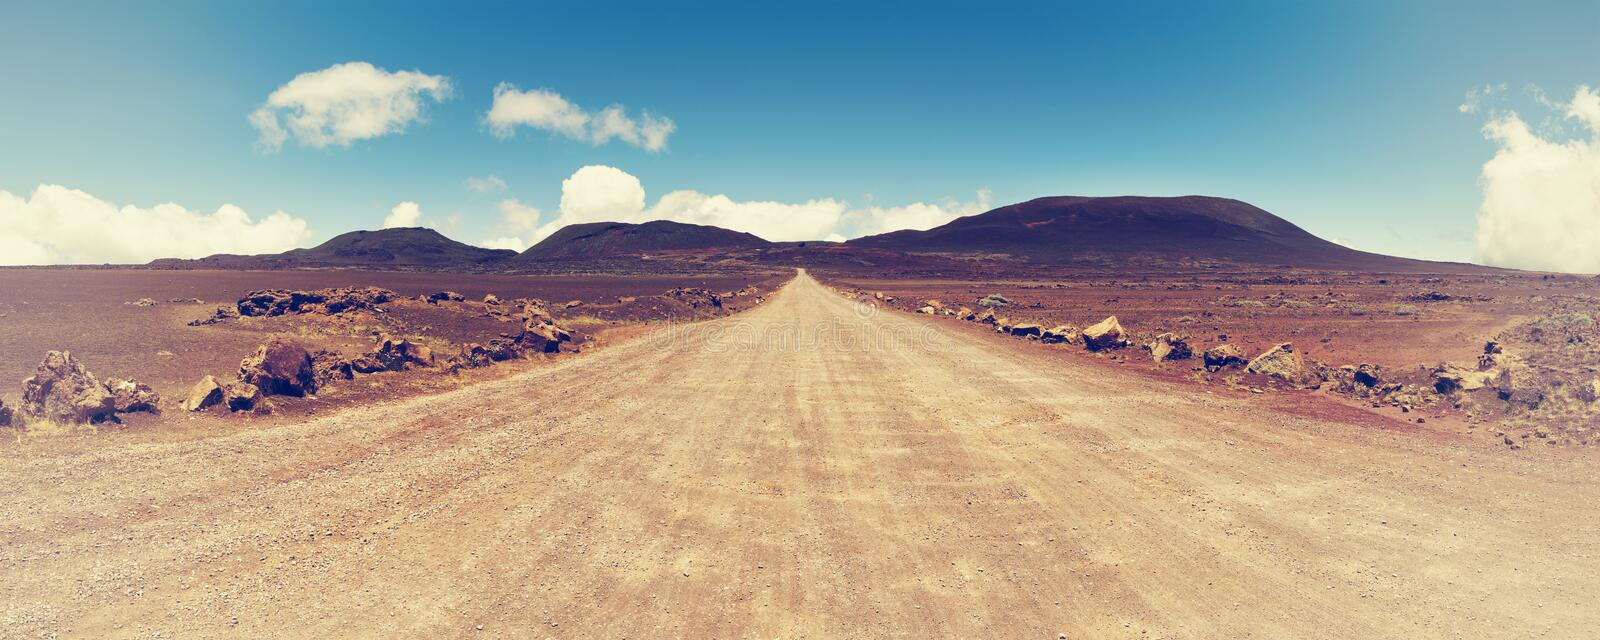 Vanishing volcan o roadon reunion island, indian ocean. royalty free stock photo